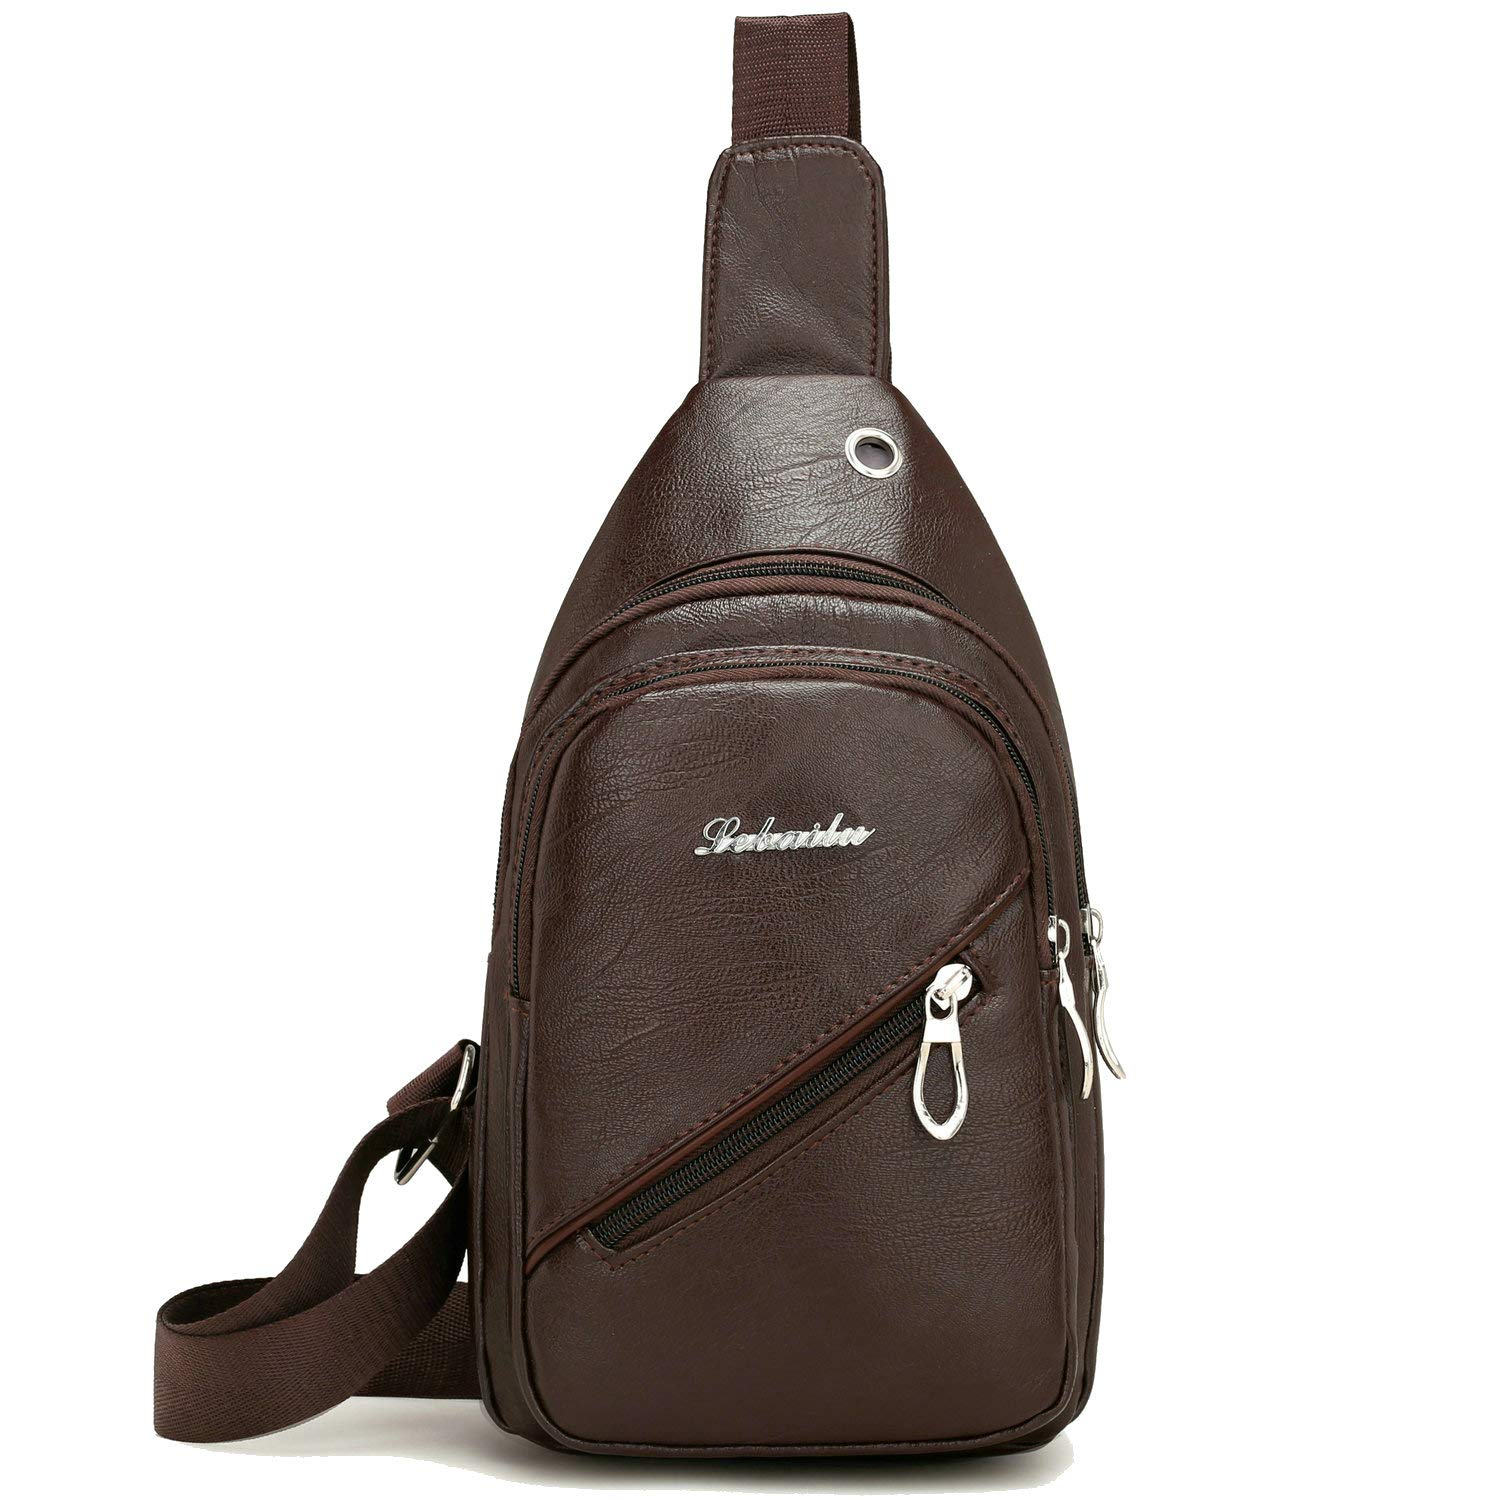 eb463520ef84 Leather Chest Sling Bag for Men Women, Small One Shoulder Crossbody ...